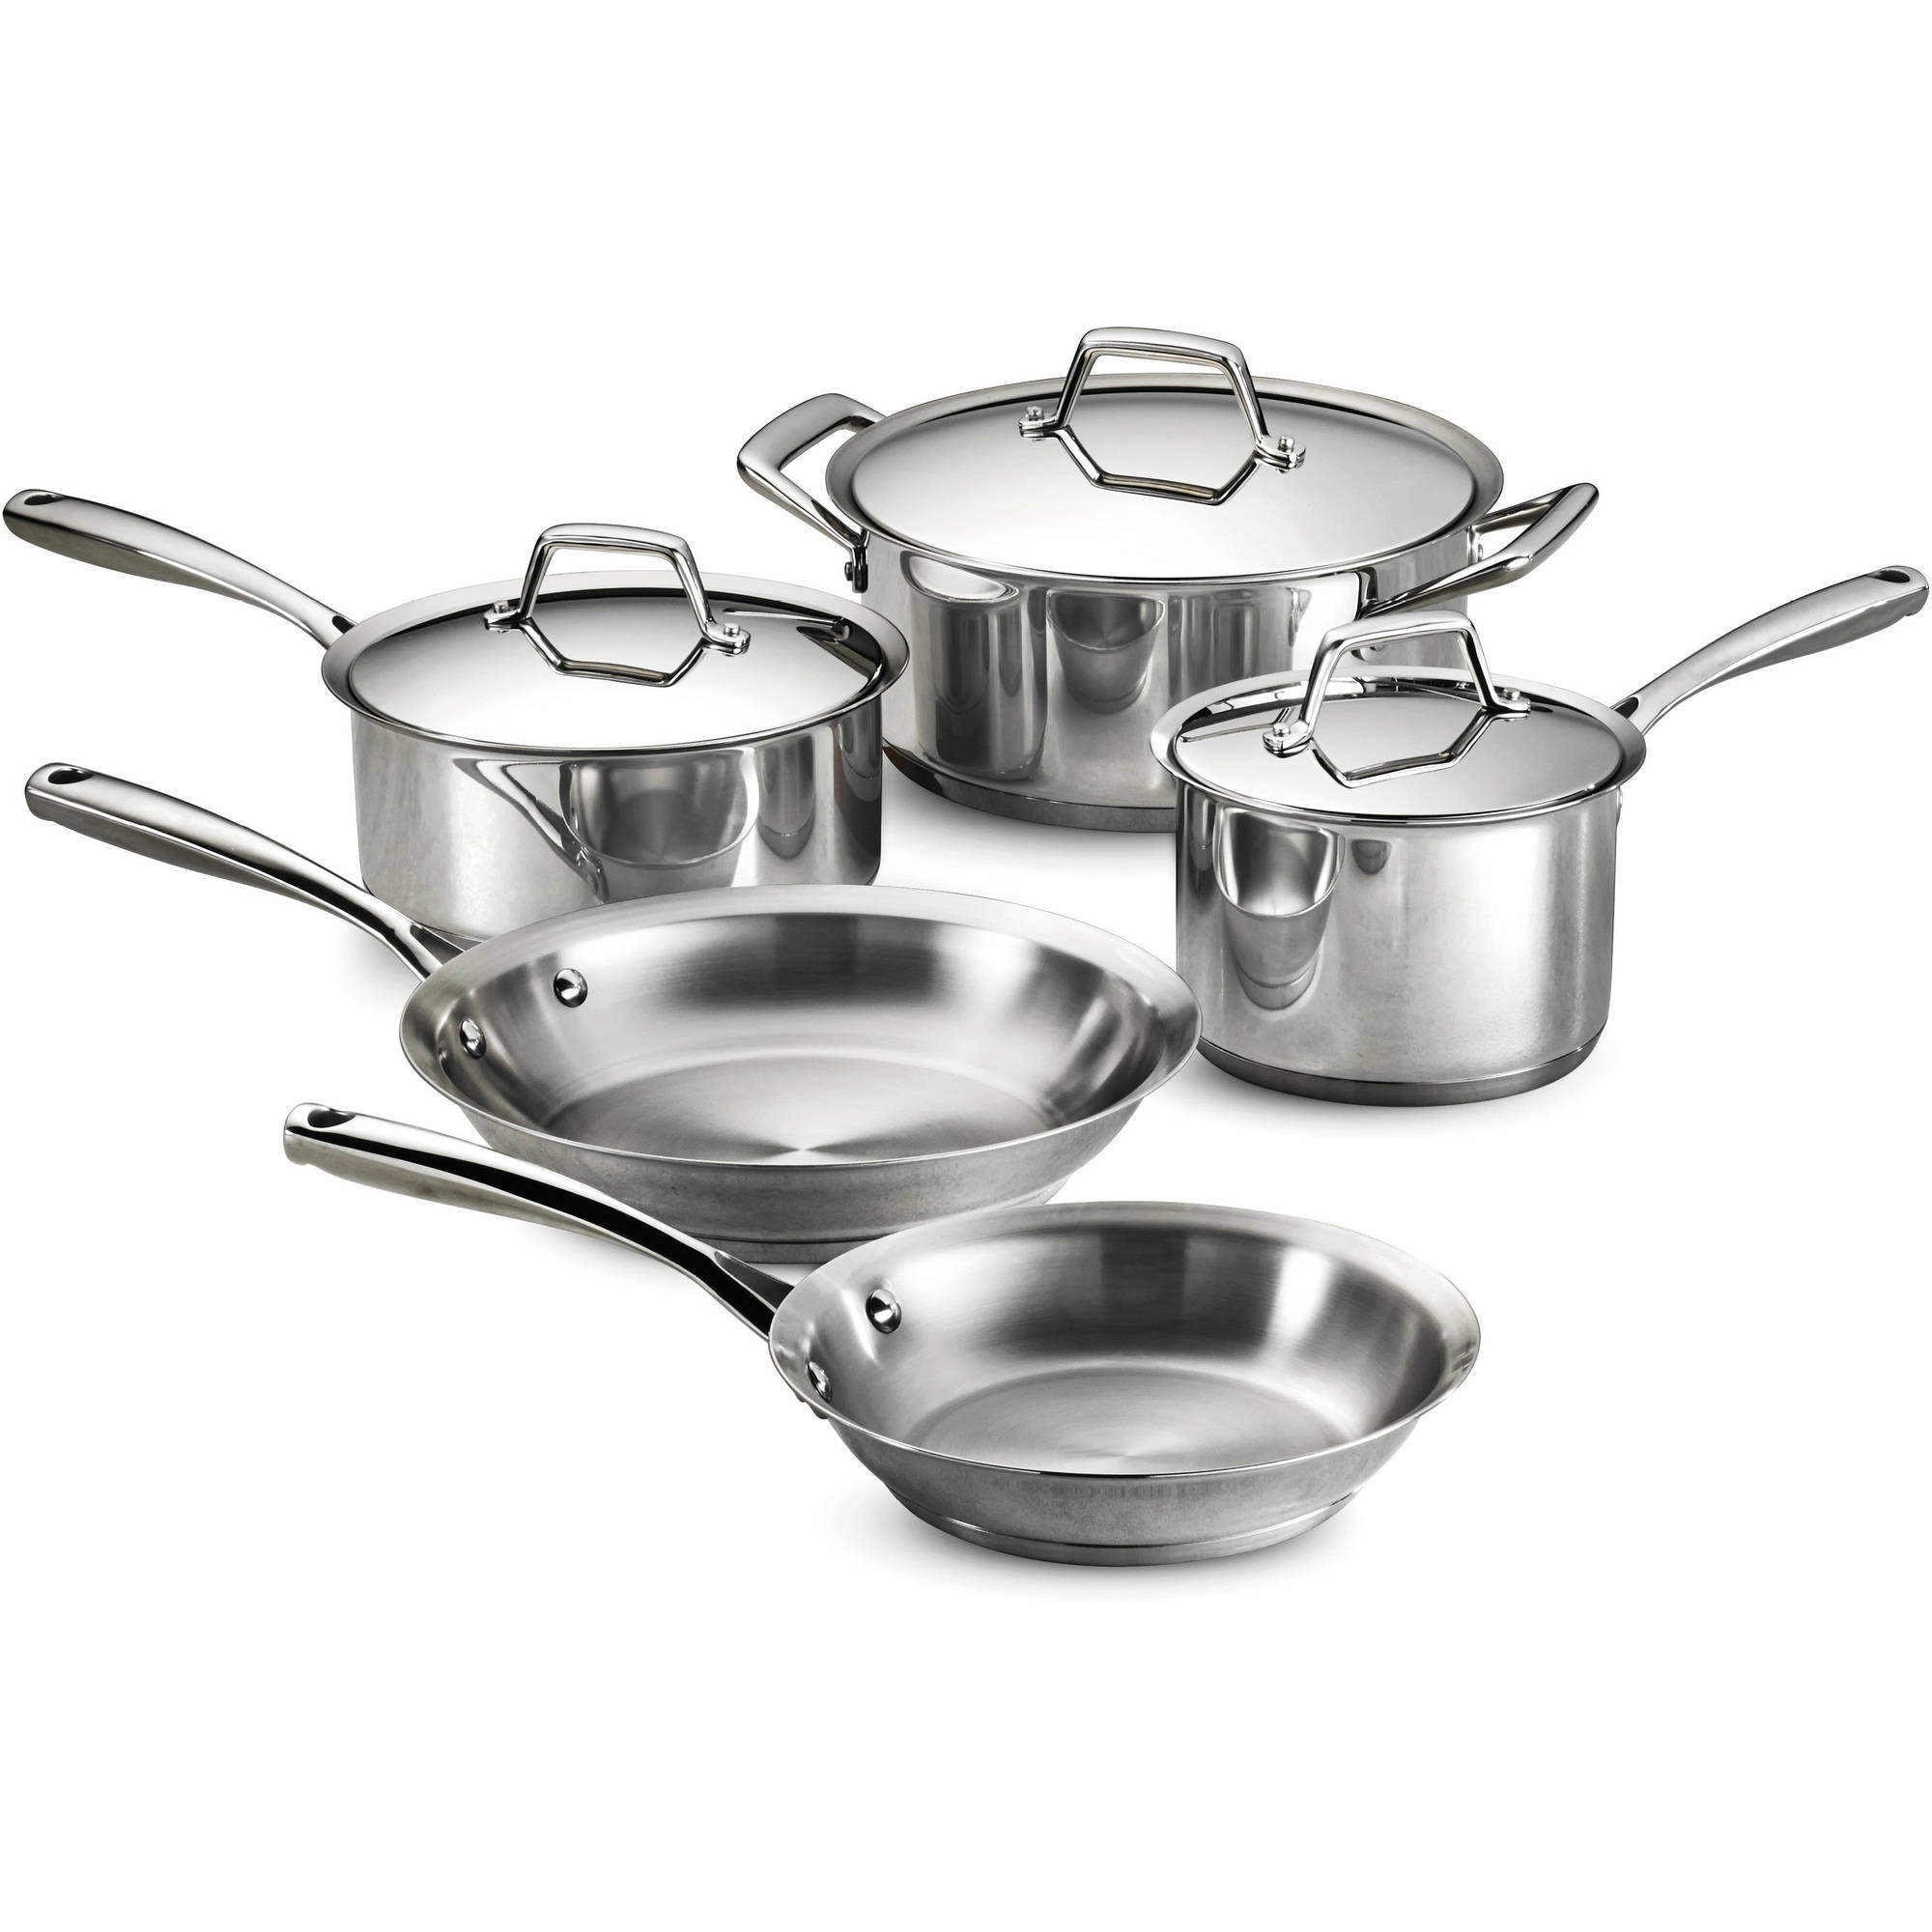 Tramontina Gourmet Prima 8-Piece Stainless Steel Cookware Set